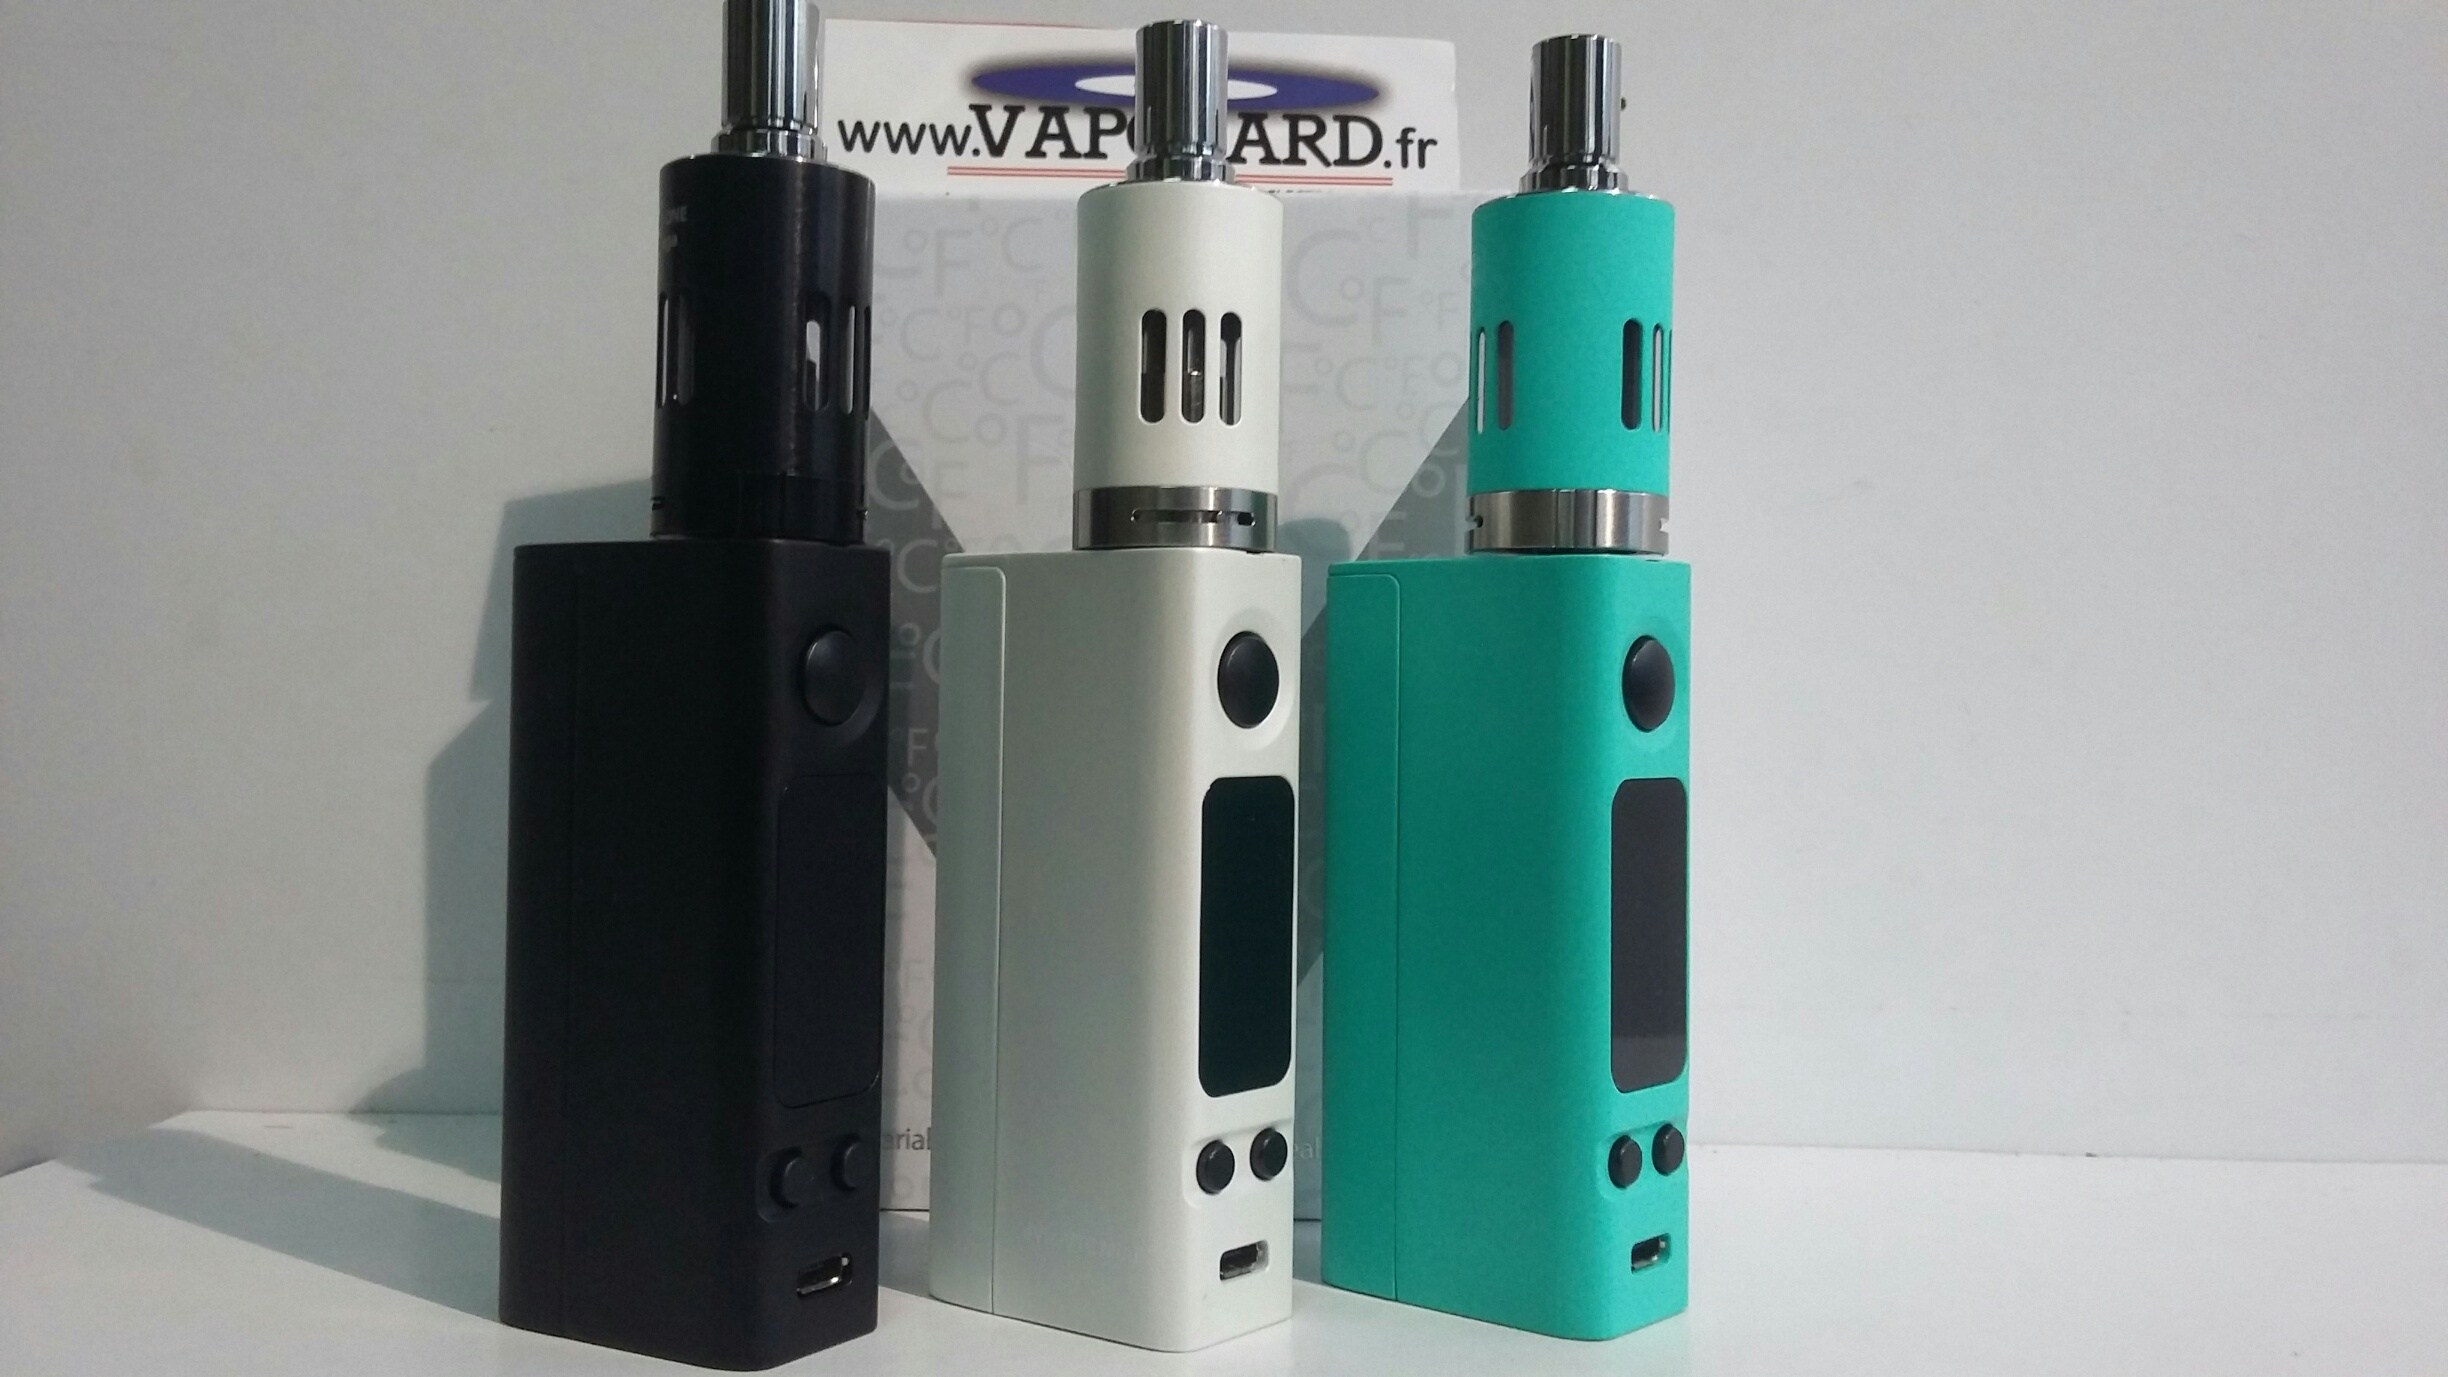 evic vtc mini joyetech pas cher 60w box sub ohm. Black Bedroom Furniture Sets. Home Design Ideas